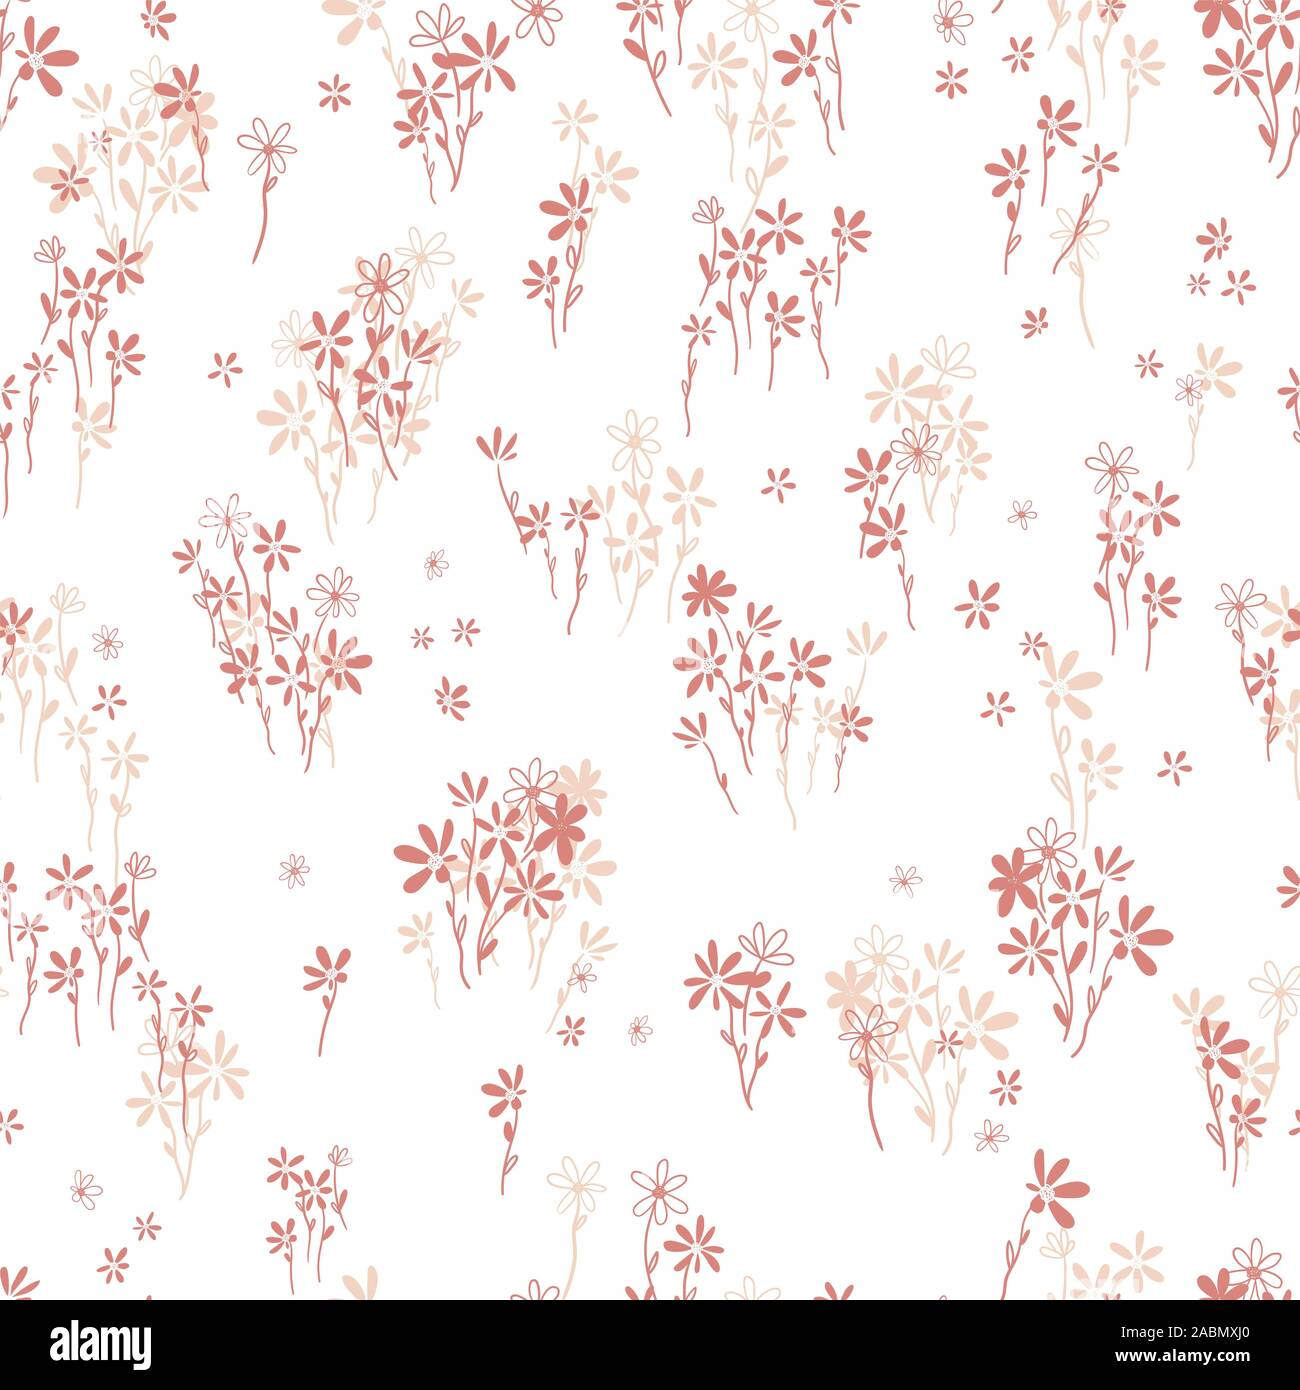 Hand Drawn Ditsy Flower Field Seamless Pattern Cute Floral